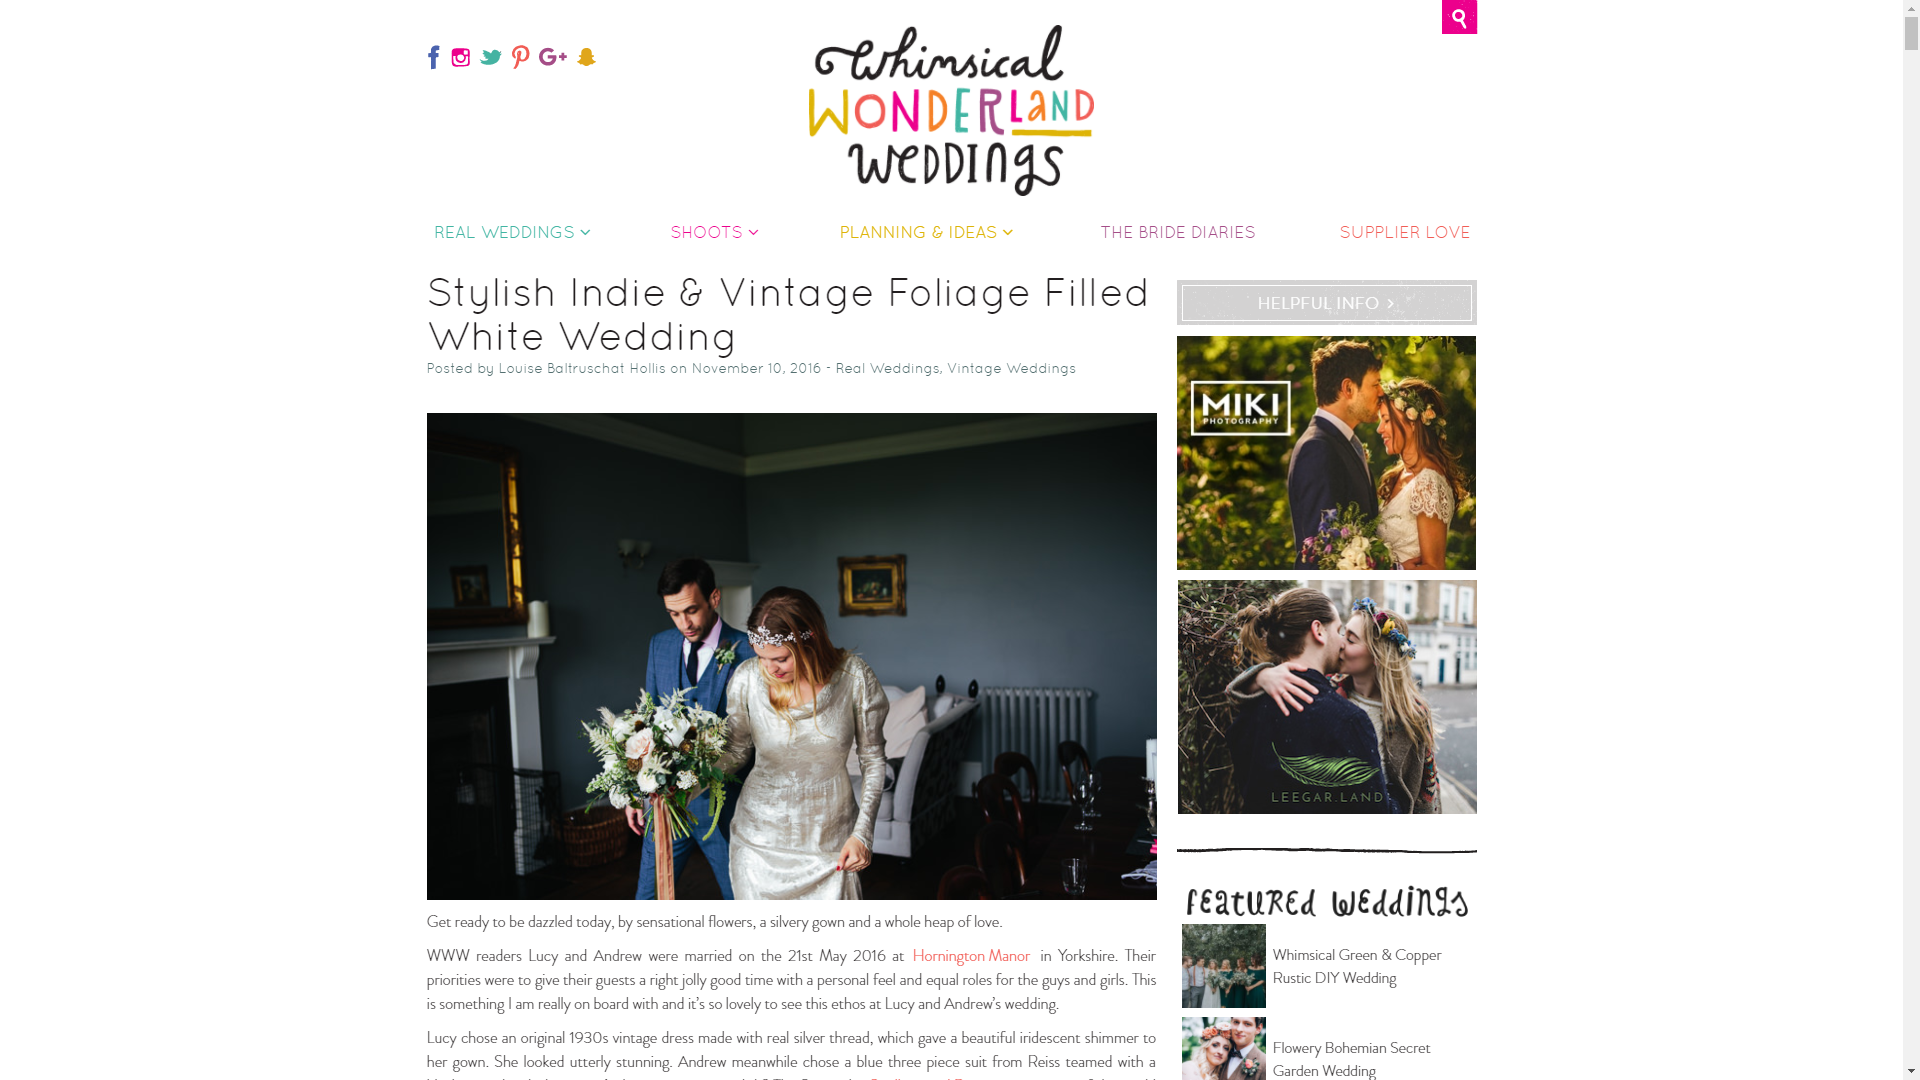 Stylish Indie & Vintage Foliage Filled White Wedding